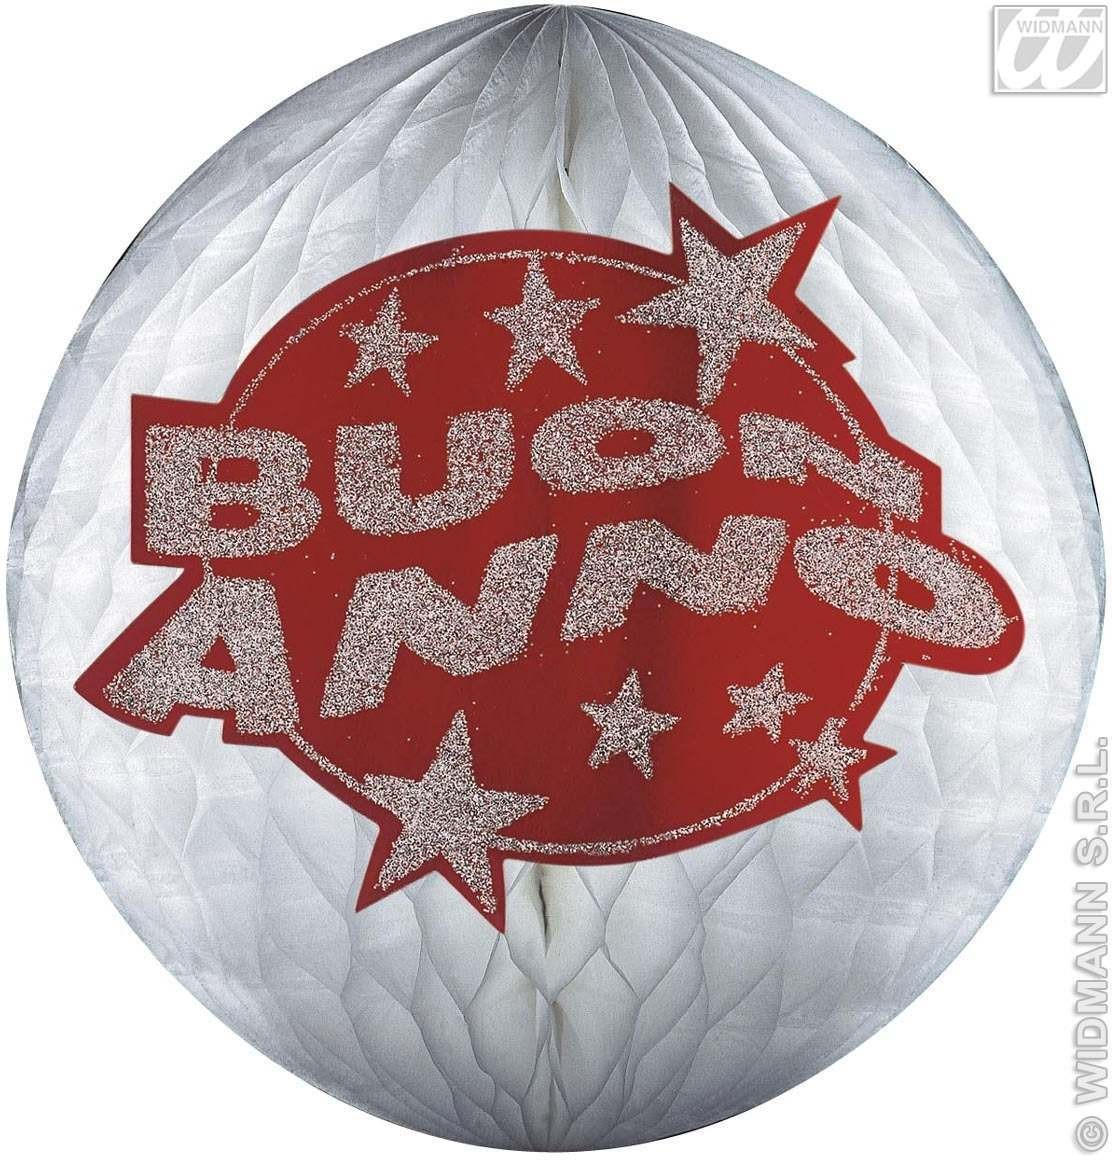 Hologr.Red Buon Anno Honeyc.Paperballs-25Cm Fancy Dress